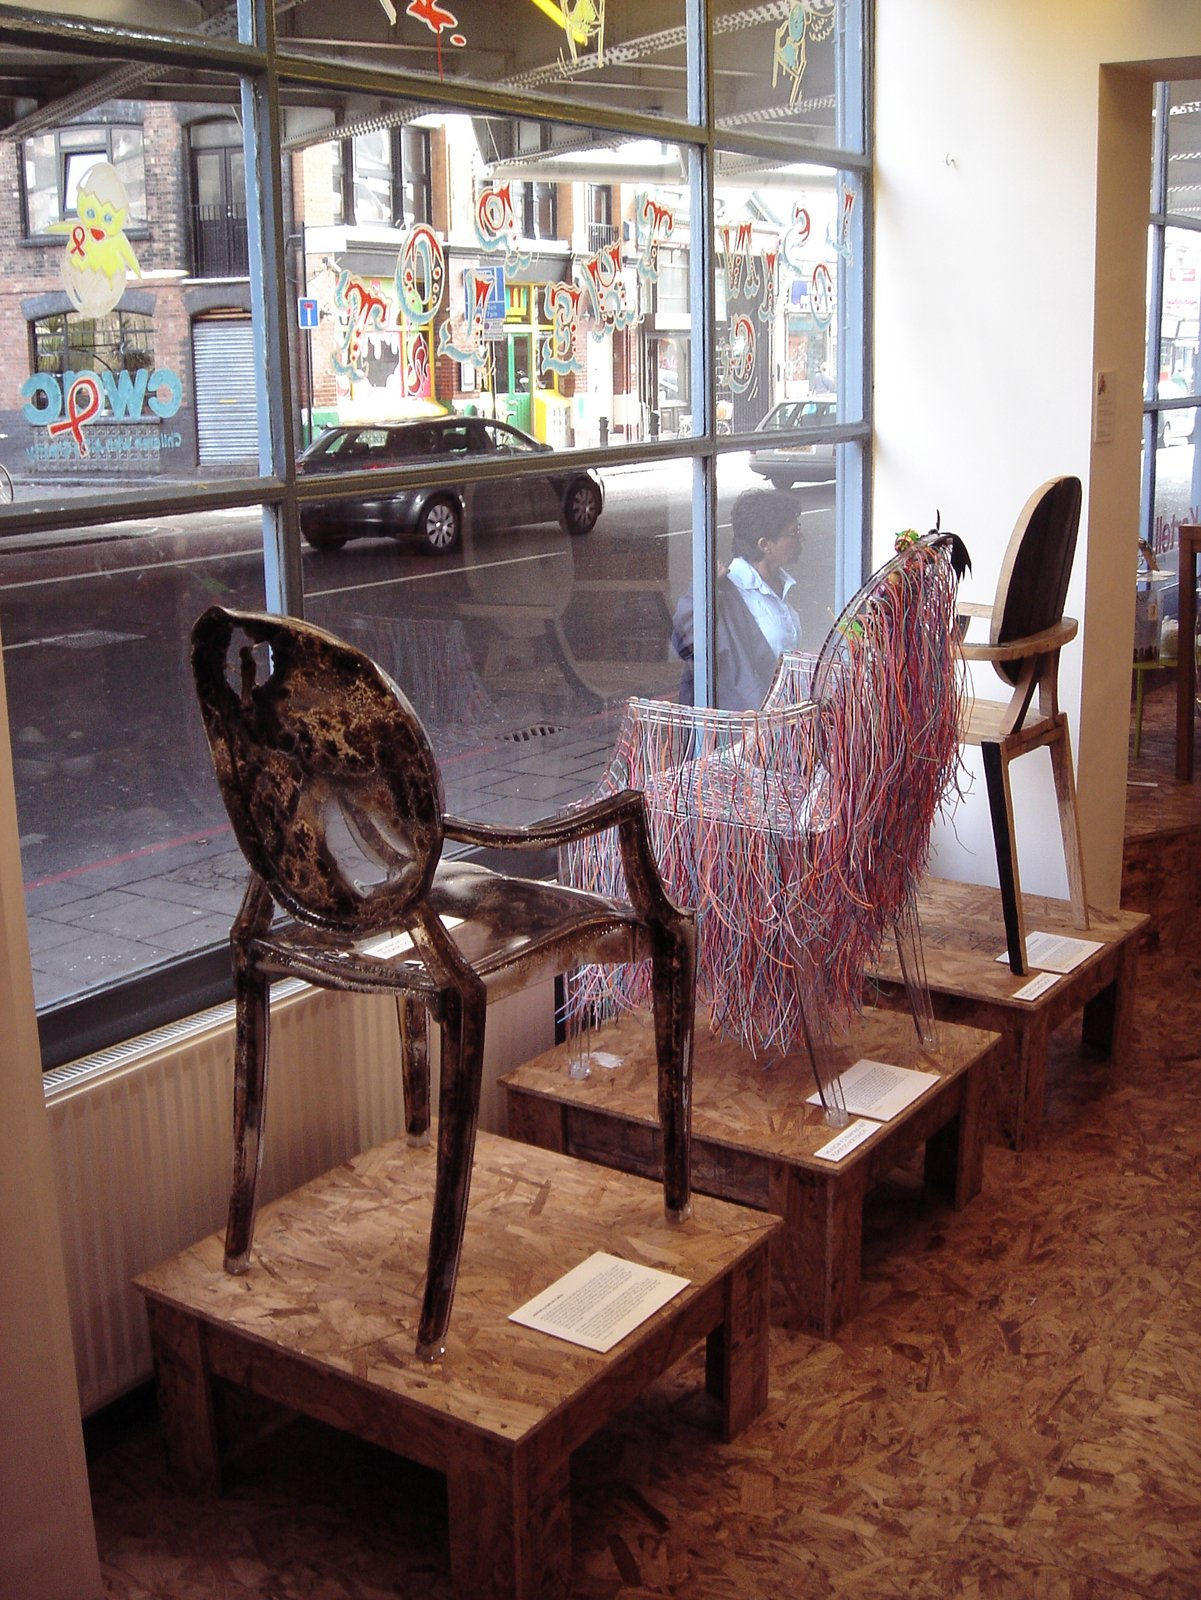 A trio of chairs on display in the window.  Photo 15 of 15 in Live from London: Lifestylebazaar